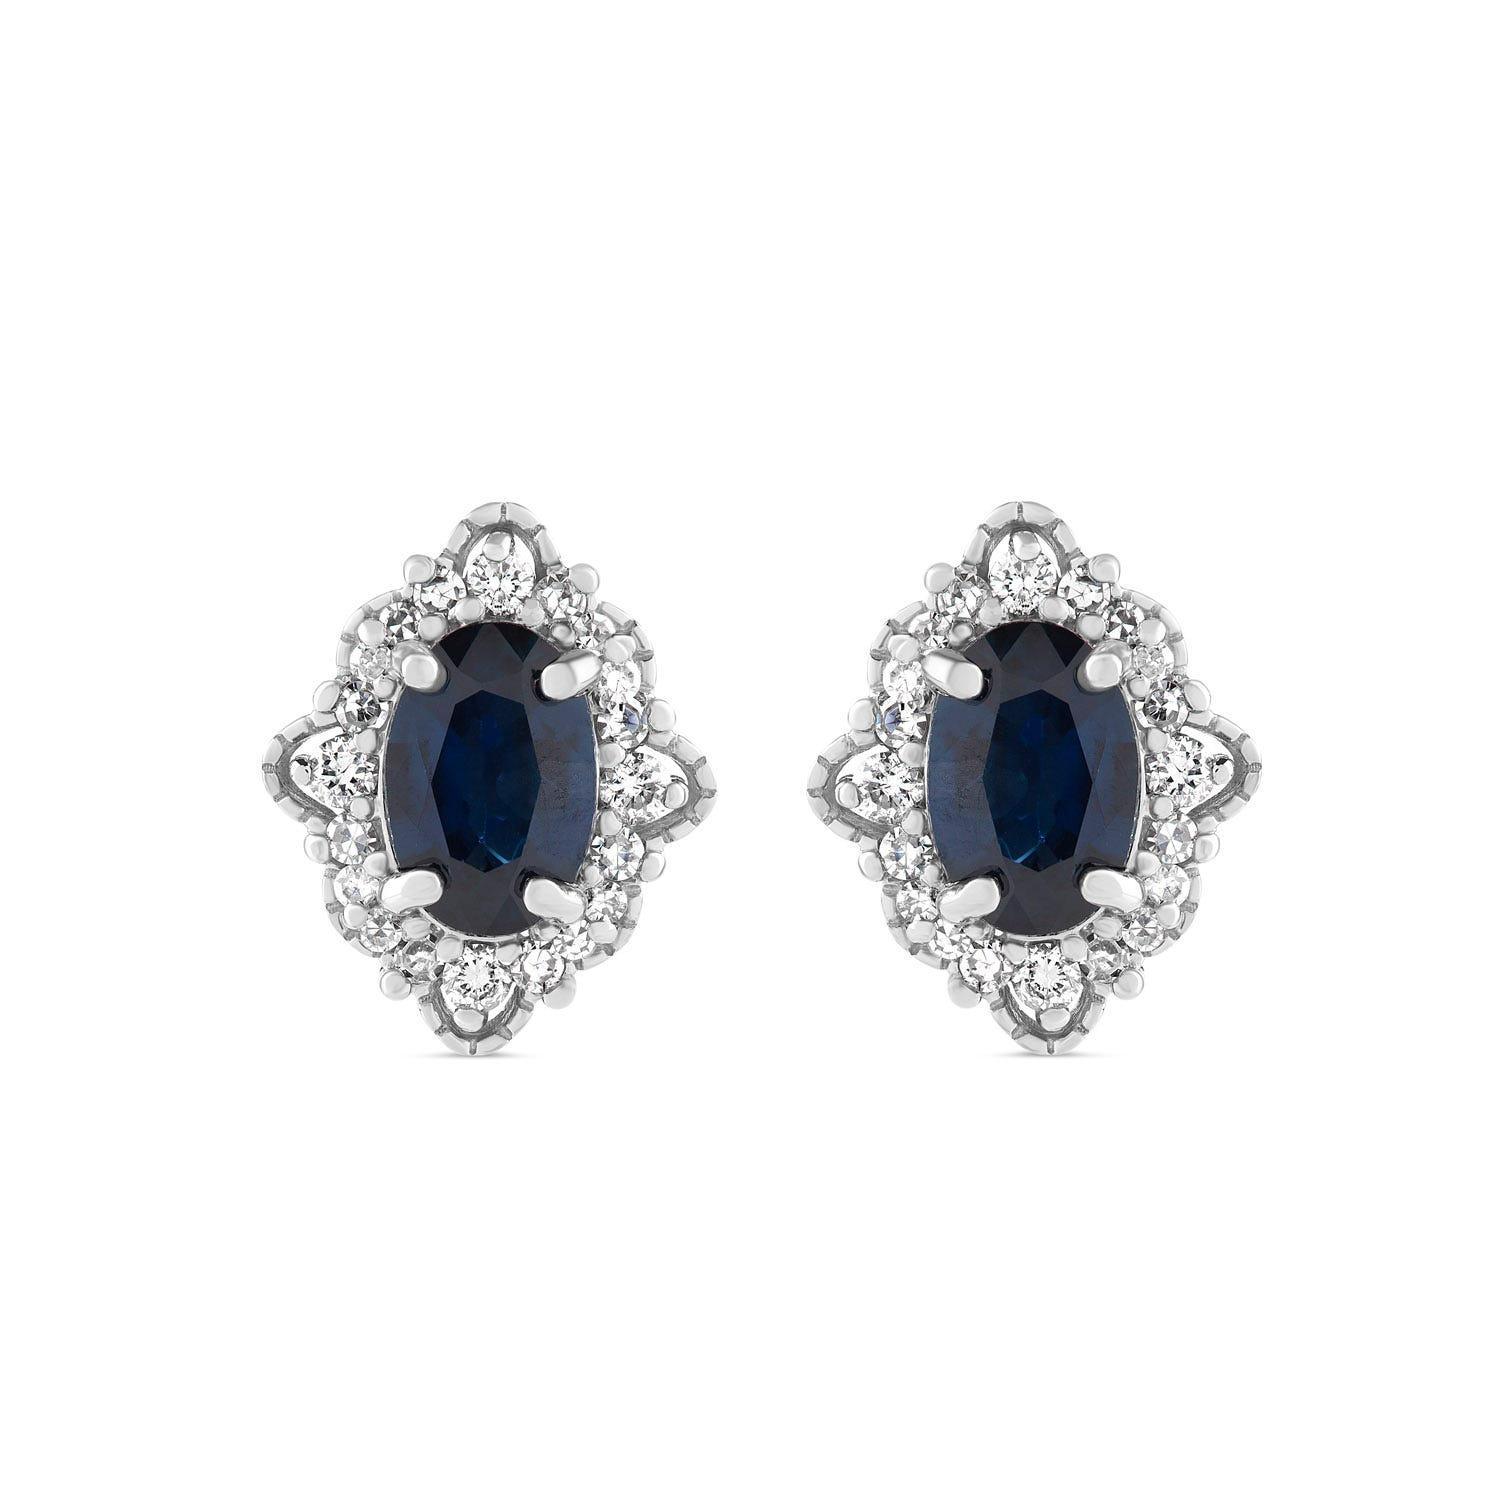 9ct White Gold Oval Sapphire Diamond Surround Antique Stud Earrings